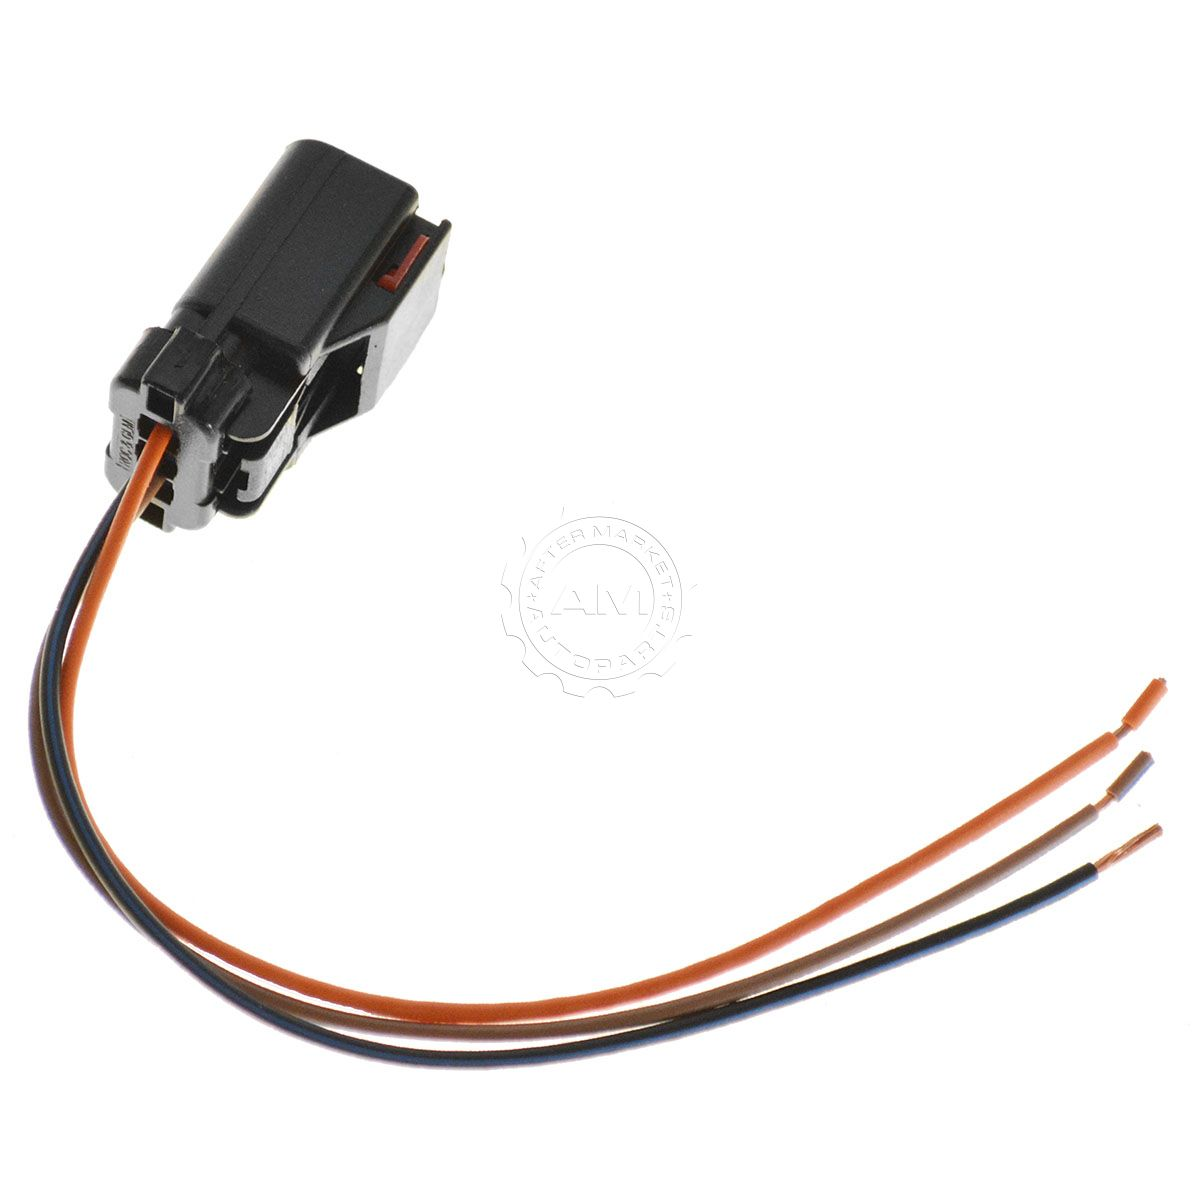 wiring connector pigtail harness 3 terminal pin for chrysler dodge rh ebay com Ford Wiring Pigtail Residential Wiring Basics